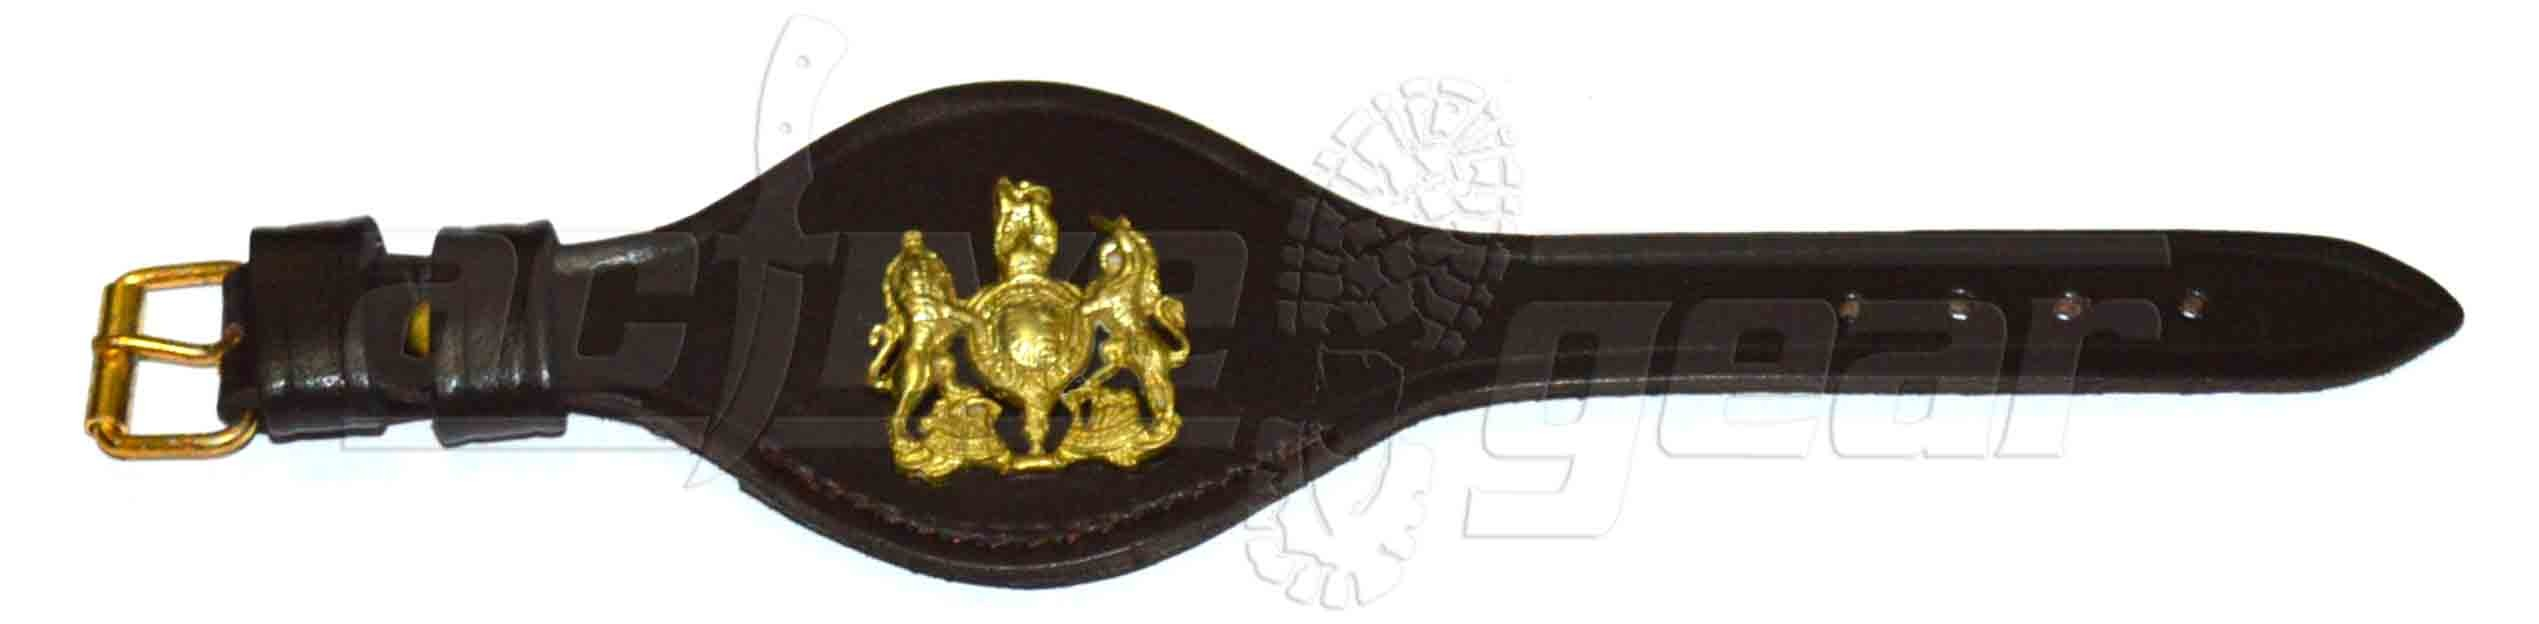 Metal Badge of Rank - Warrant Officer Class I Royal Arms